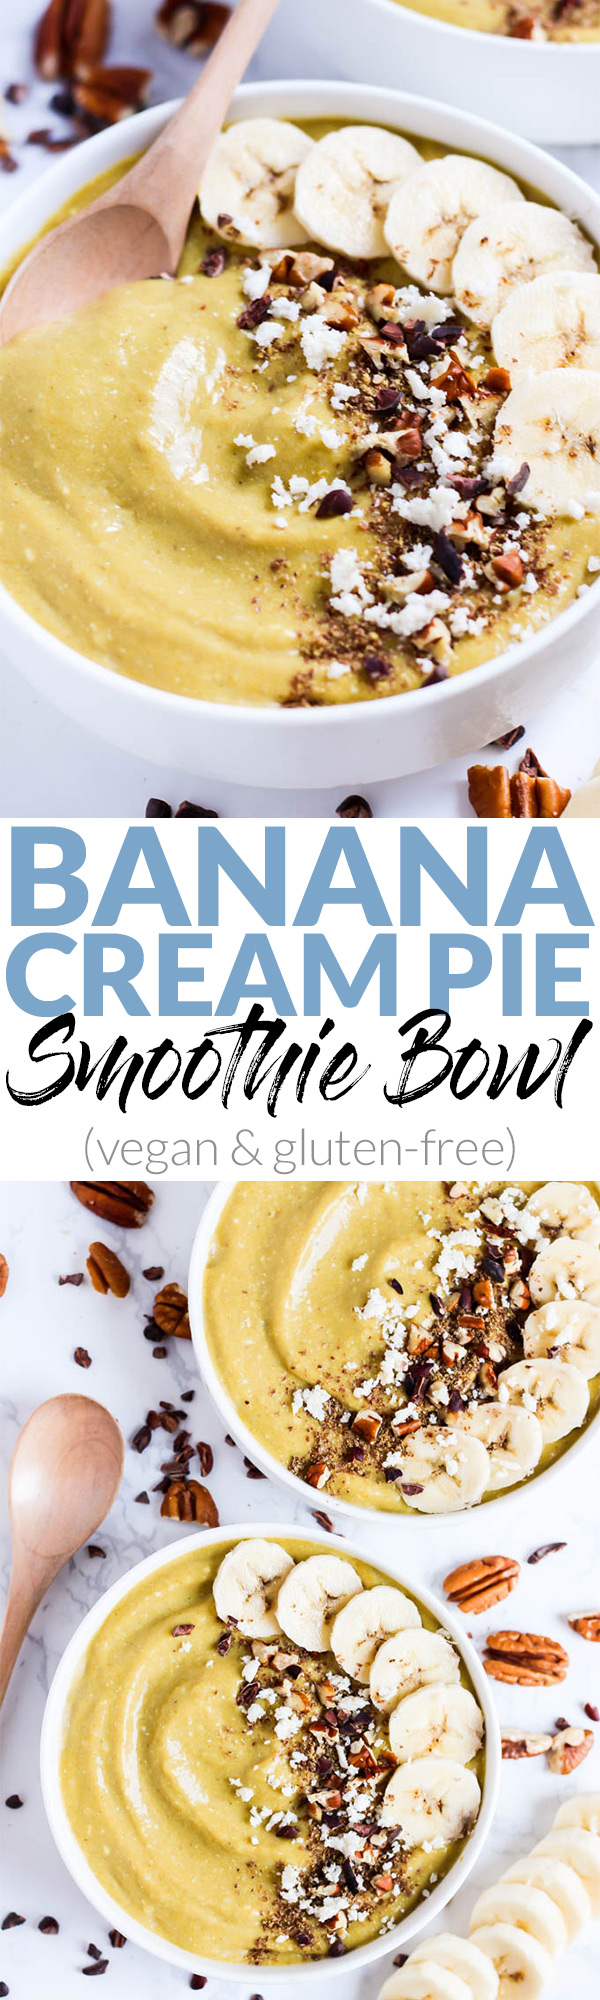 Dessert for breakfast! This creamy Banana Cream Pie Smoothie Bowl is a decadent & healthy way to start the day. Load on the toppings! (vegan & gluten-free)